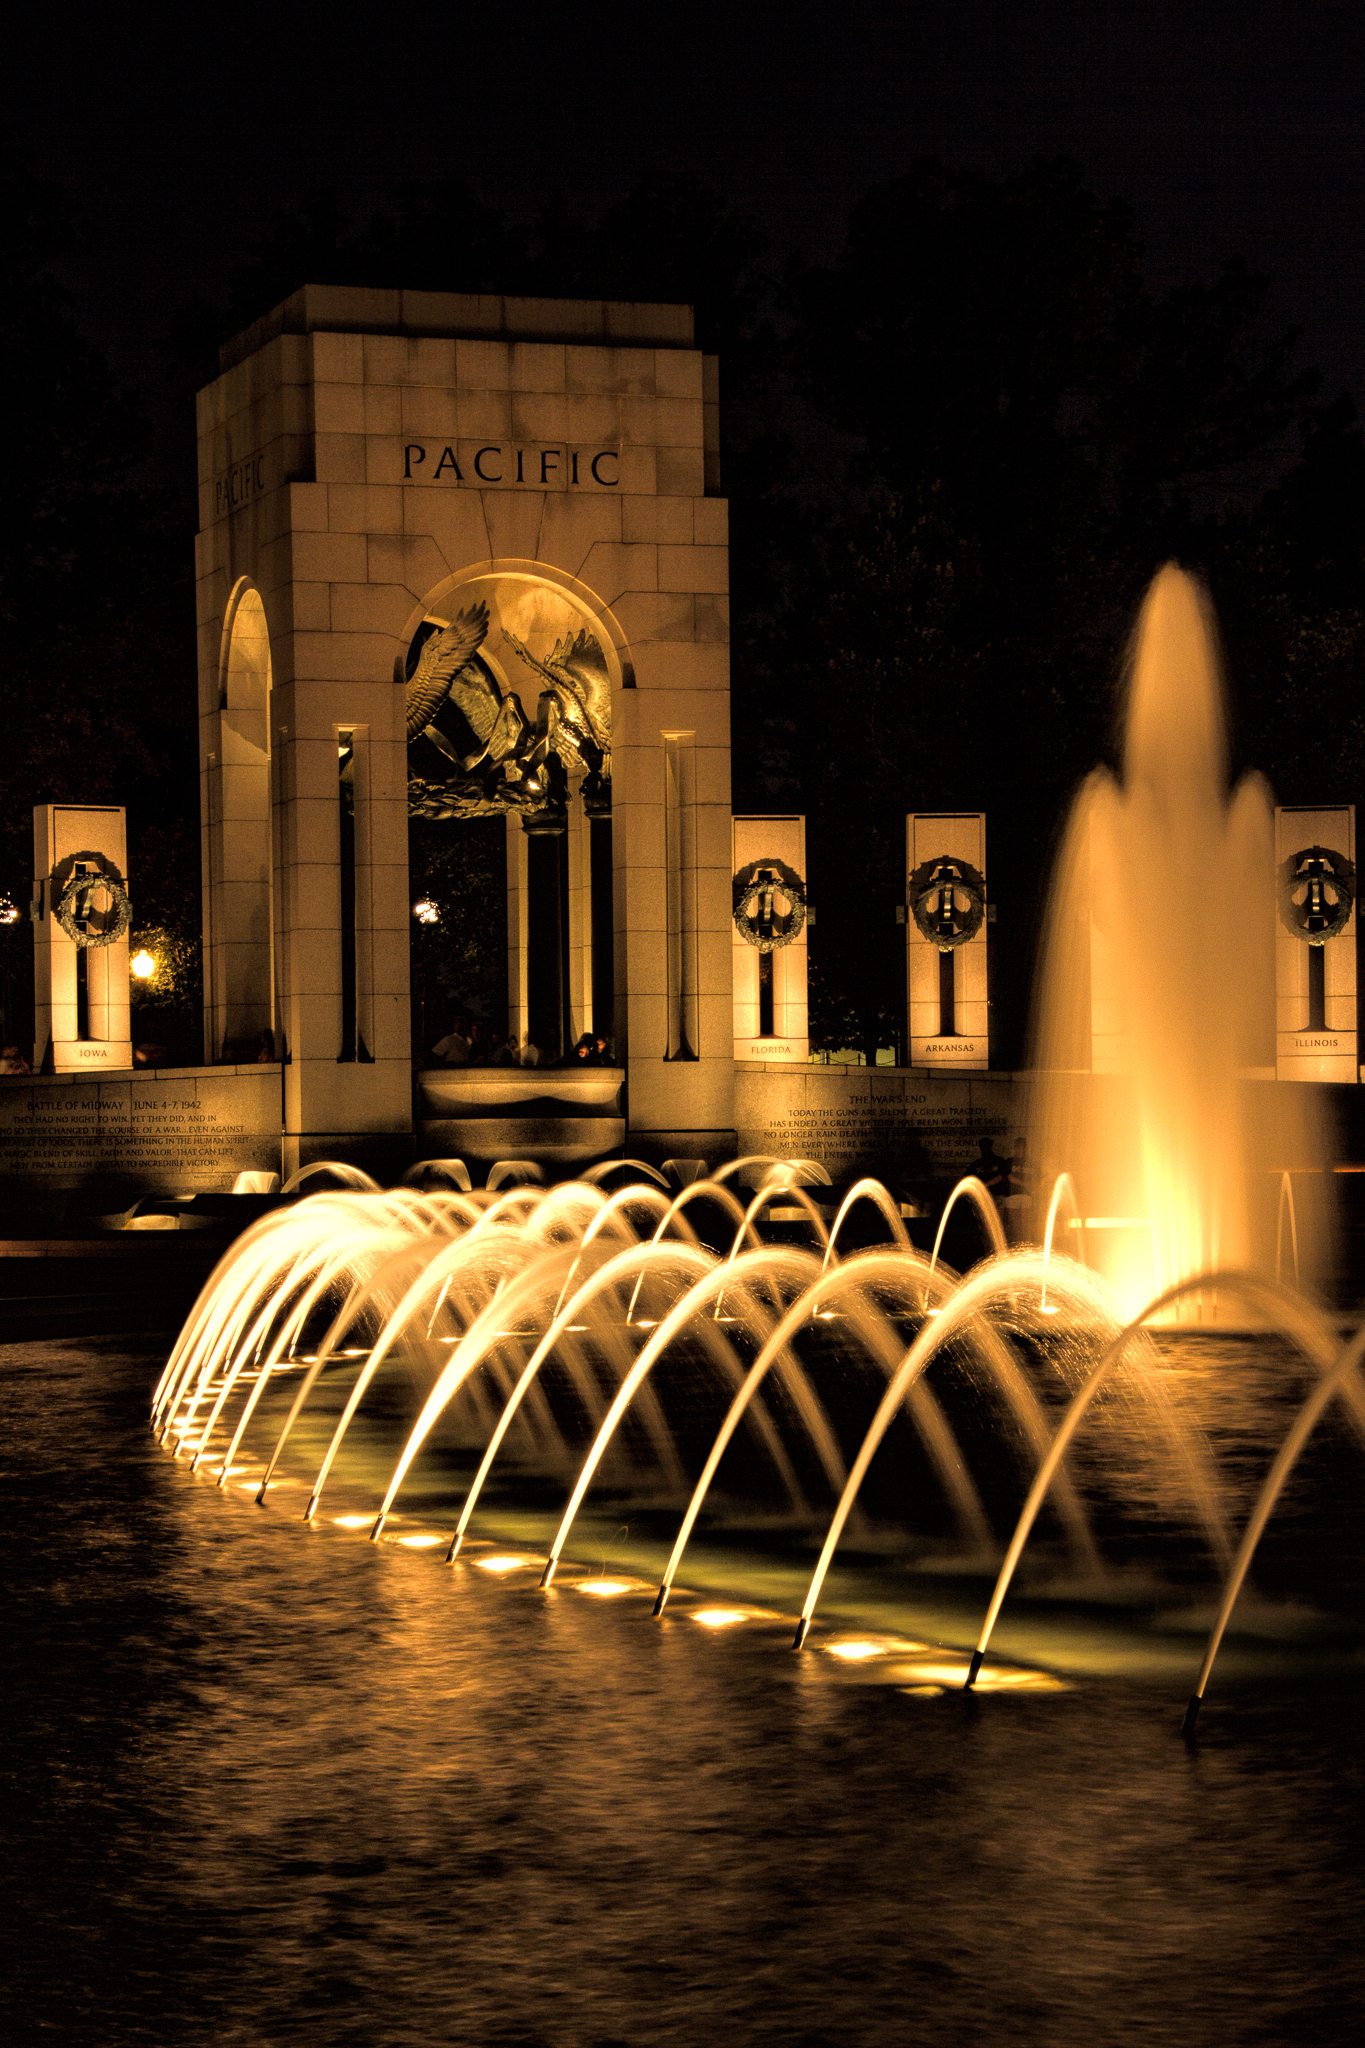 130611_WW2 Memorial_Pacific by Karl G. Graf.